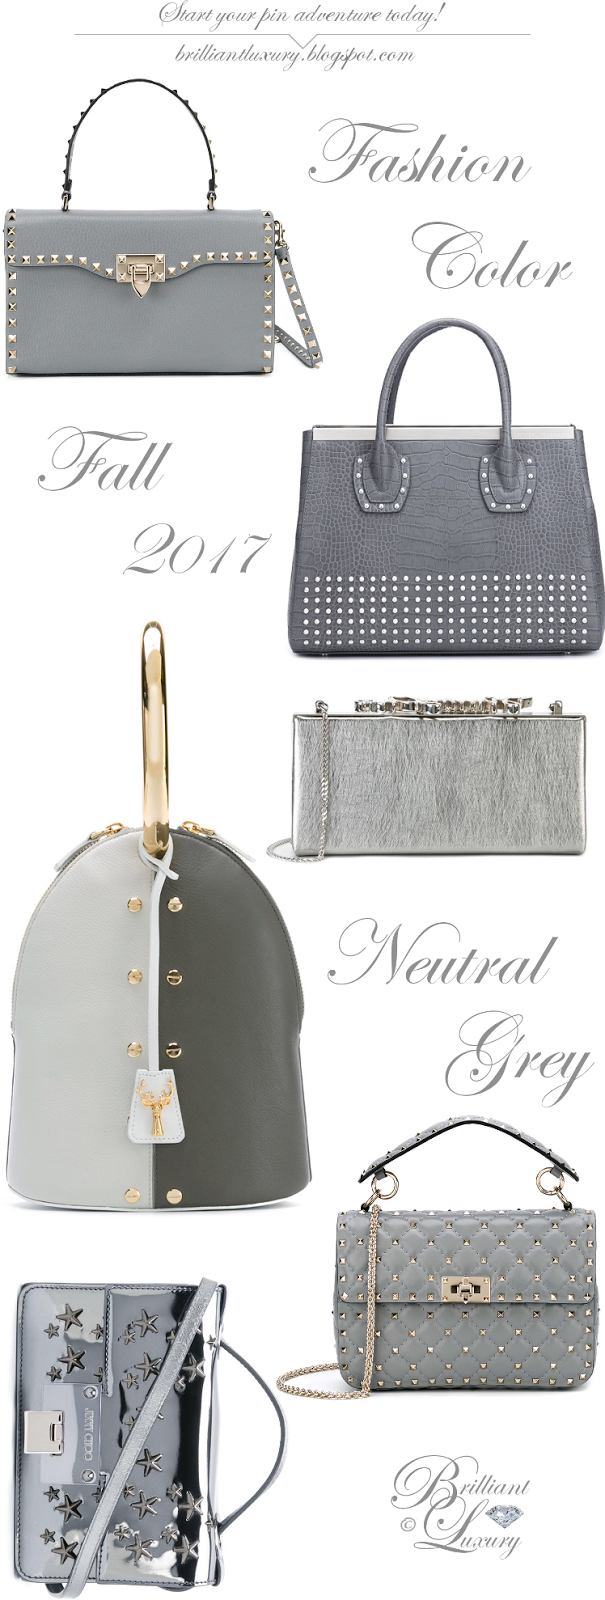 Brilliant Luxury ♦ Fashion Color Fall 2017 ~ neutral grey ~ Part II